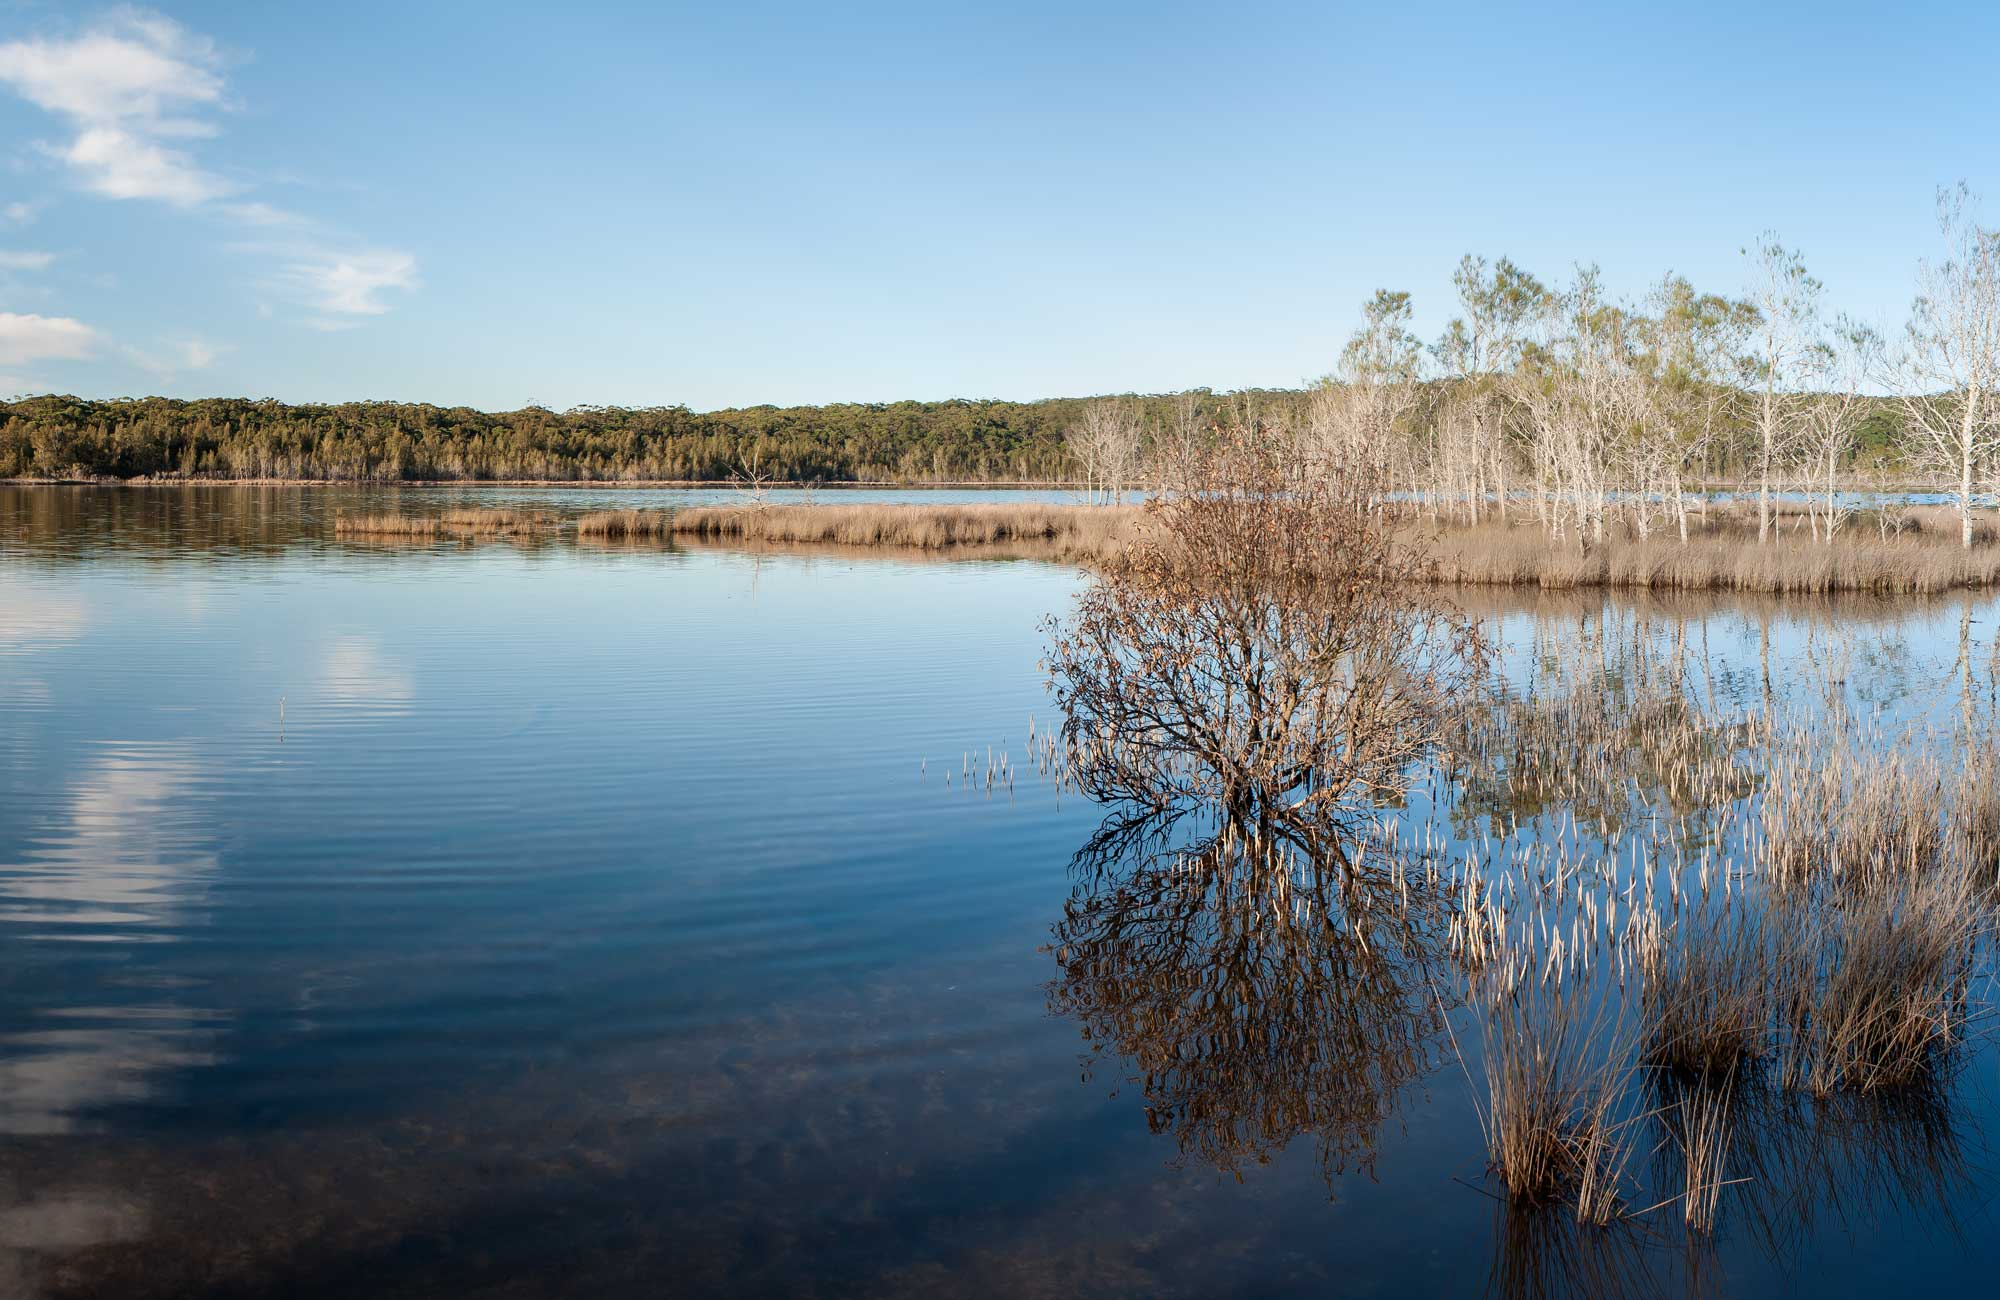 Pattimores Lagoon, Narrawallee National Park. Photo: Michael van Ewijk